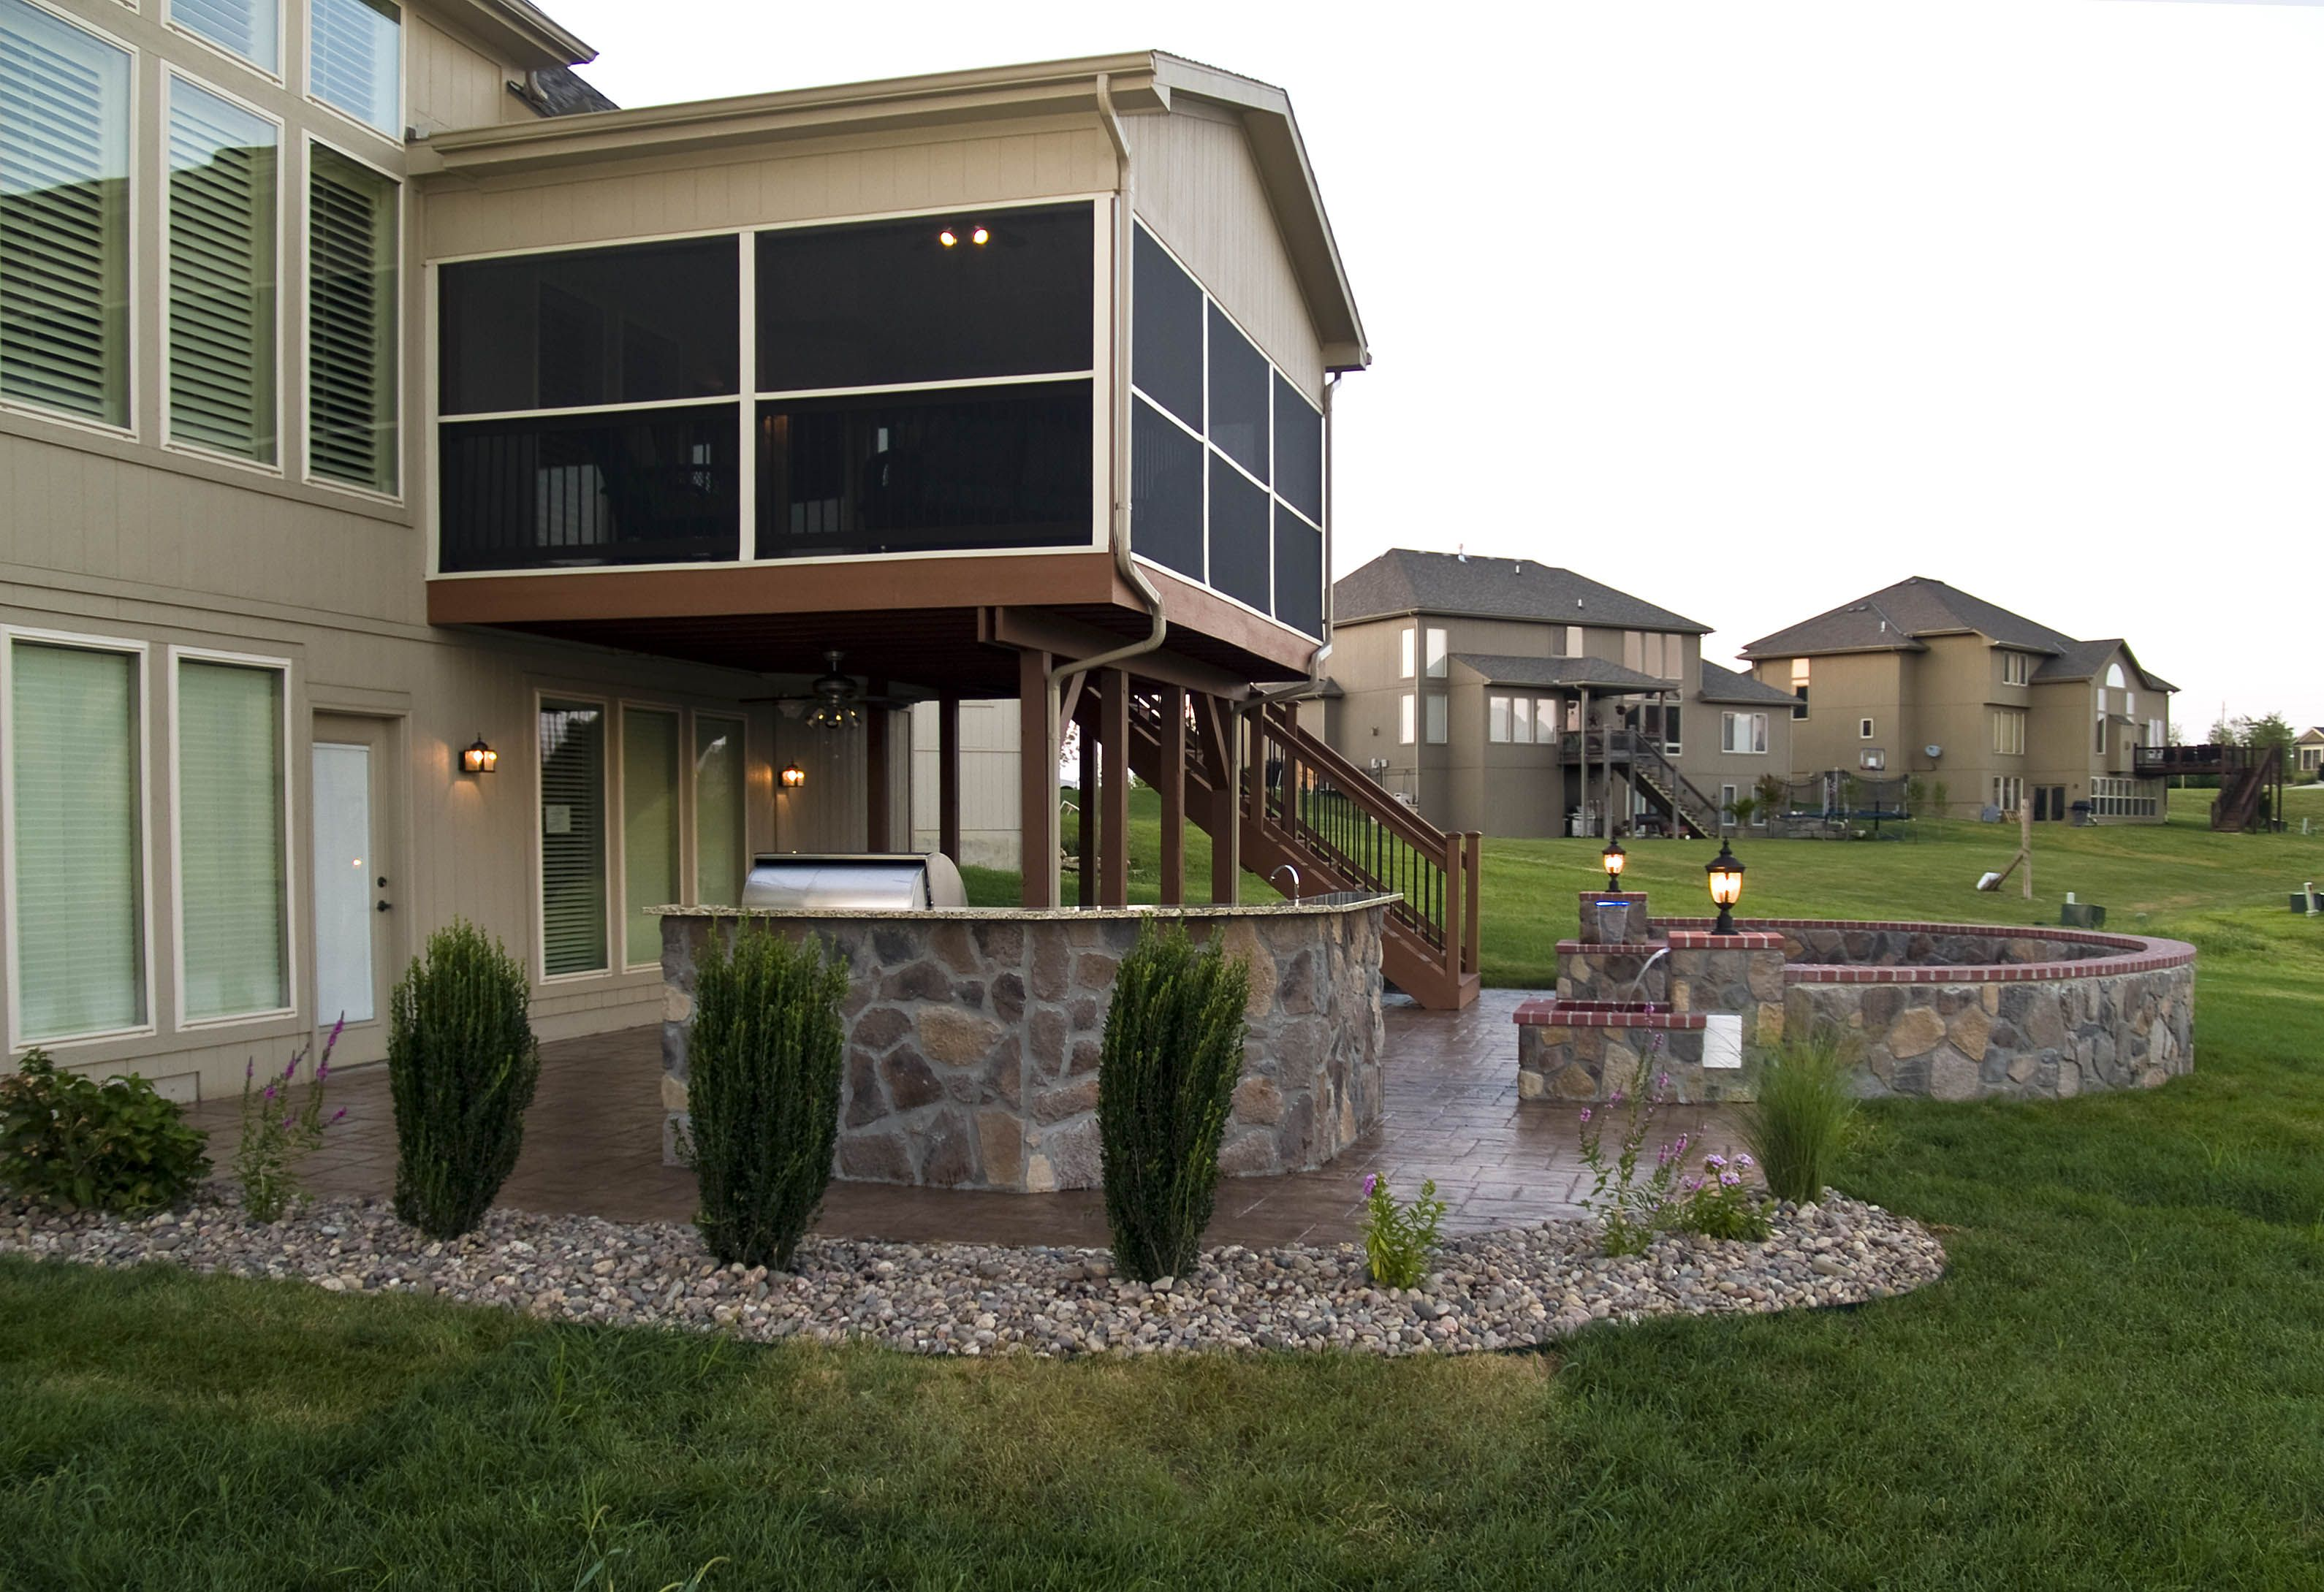 Gable Covered And Screened Evergrain Deck Stone Walls